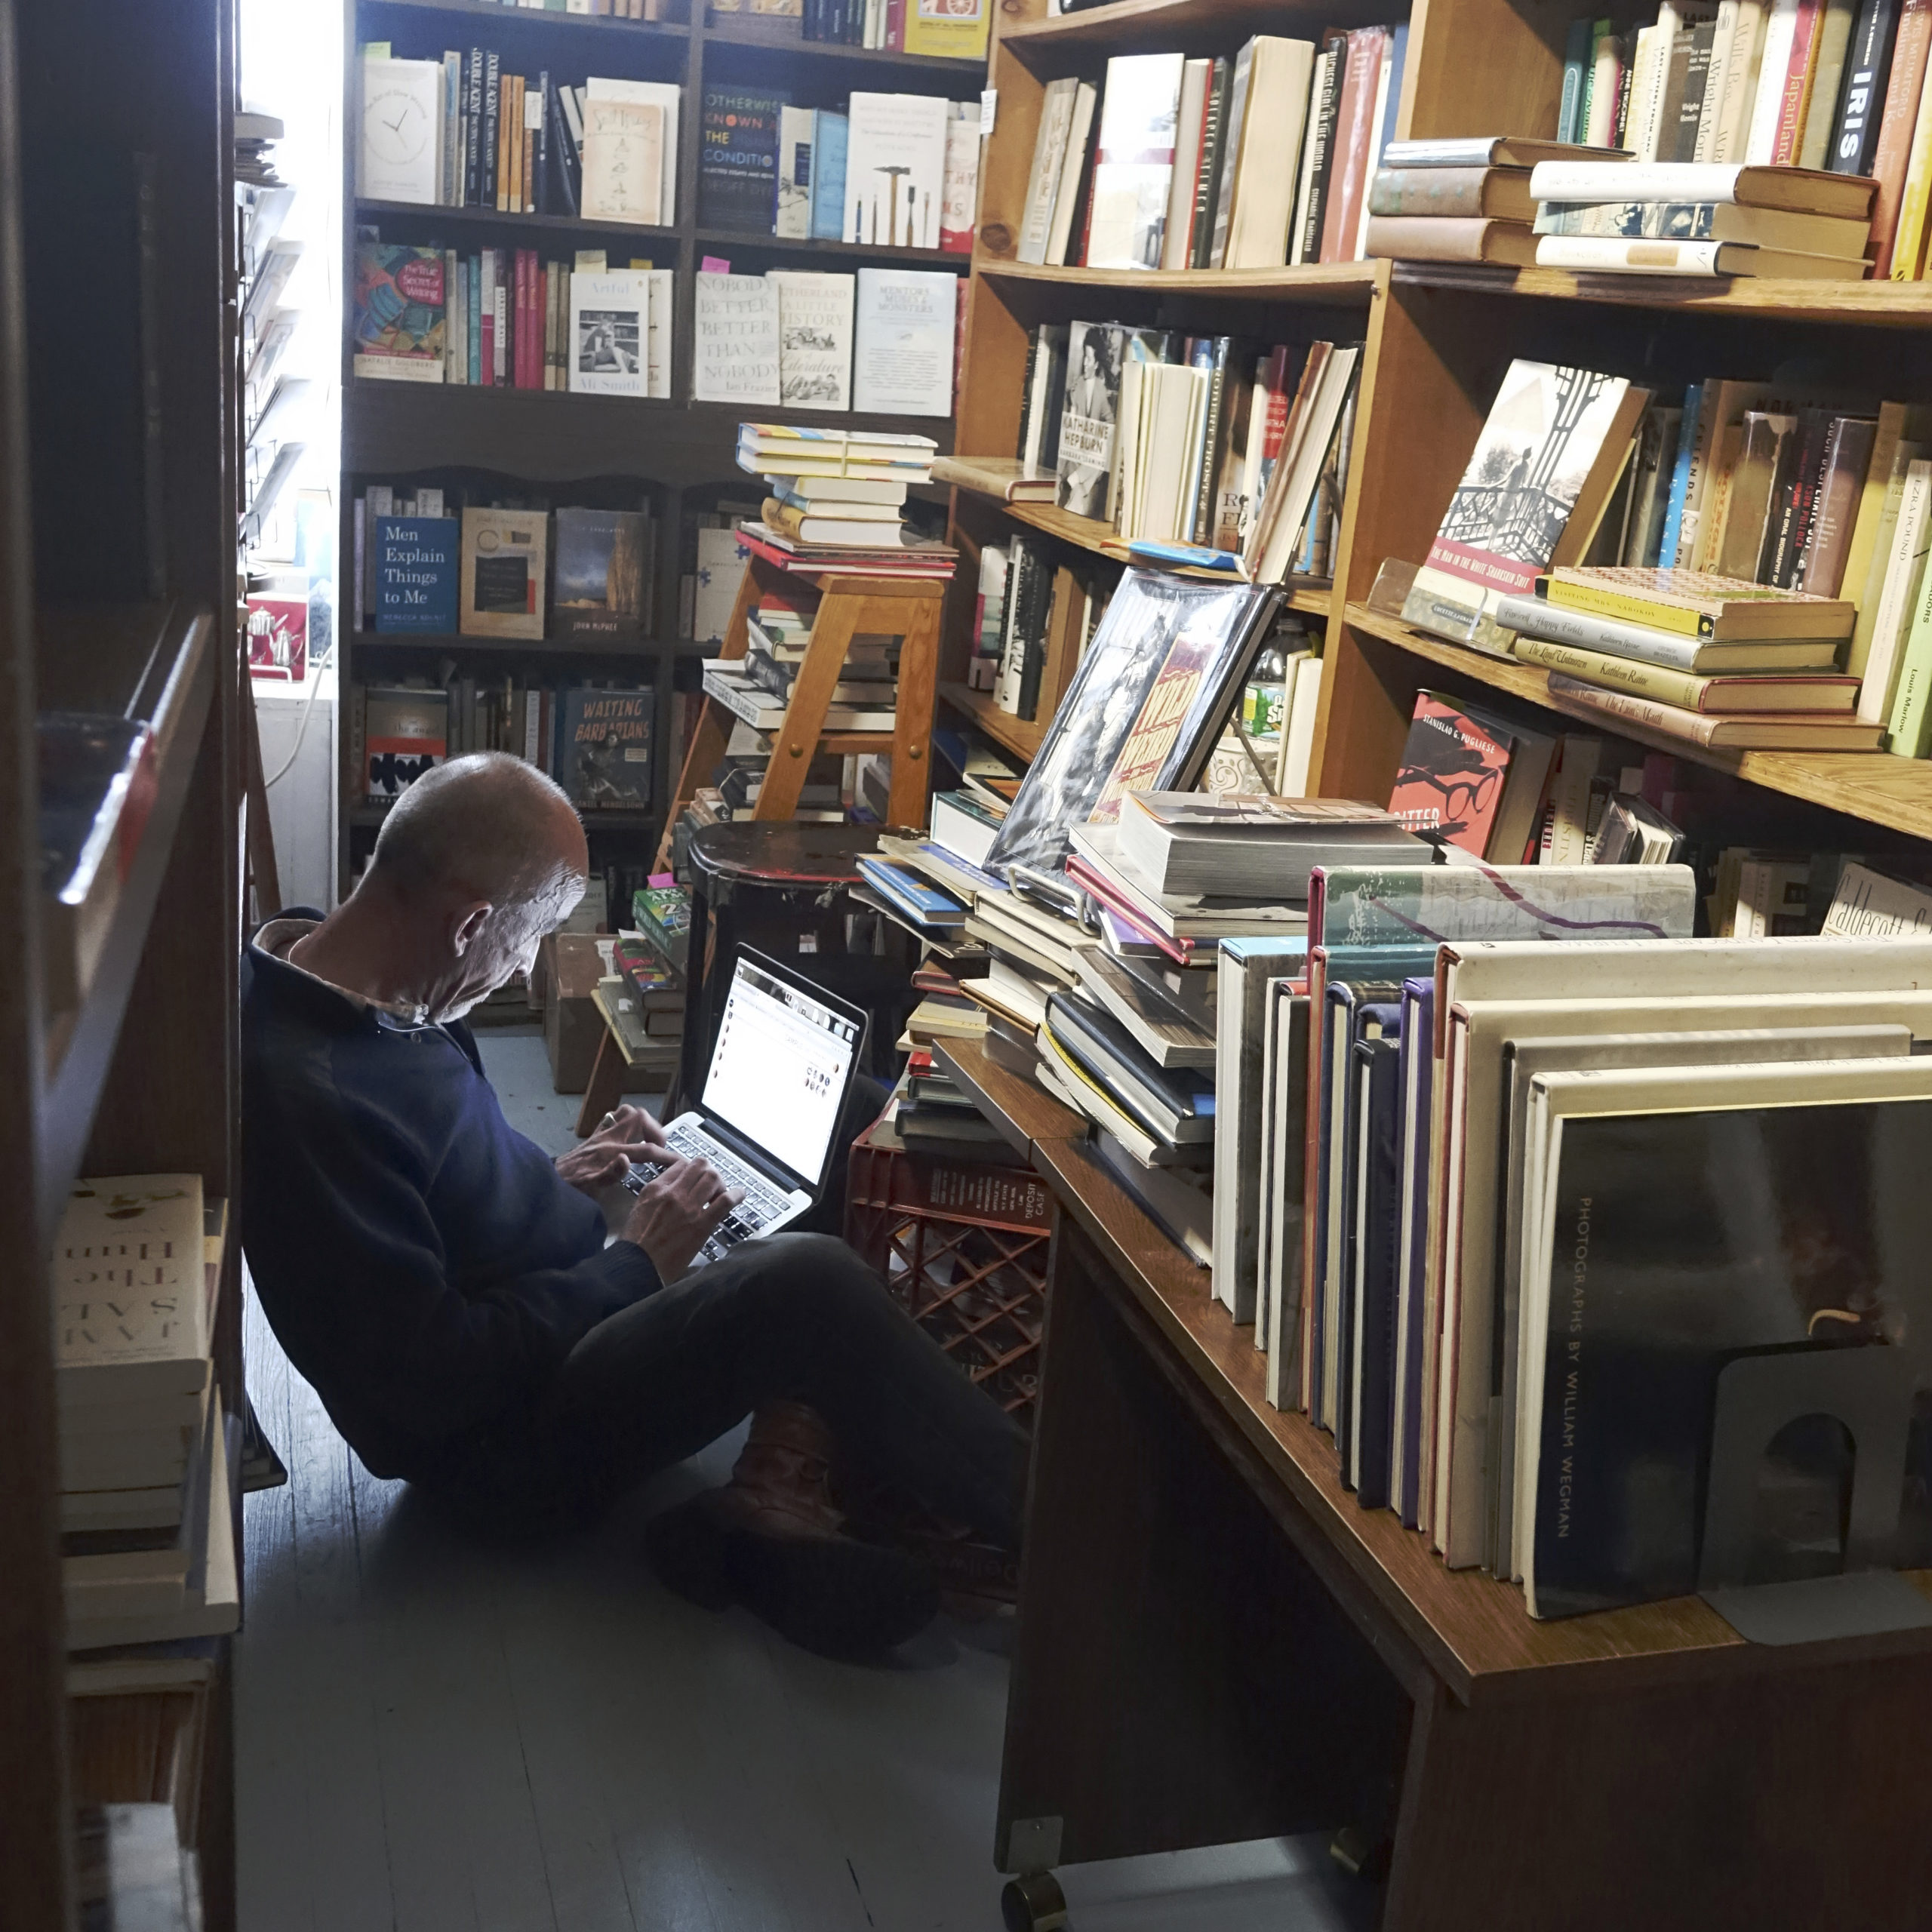 Mark Doty finds a quiet place to work in the stacks at Canio's.      KATHRYN SZOKA